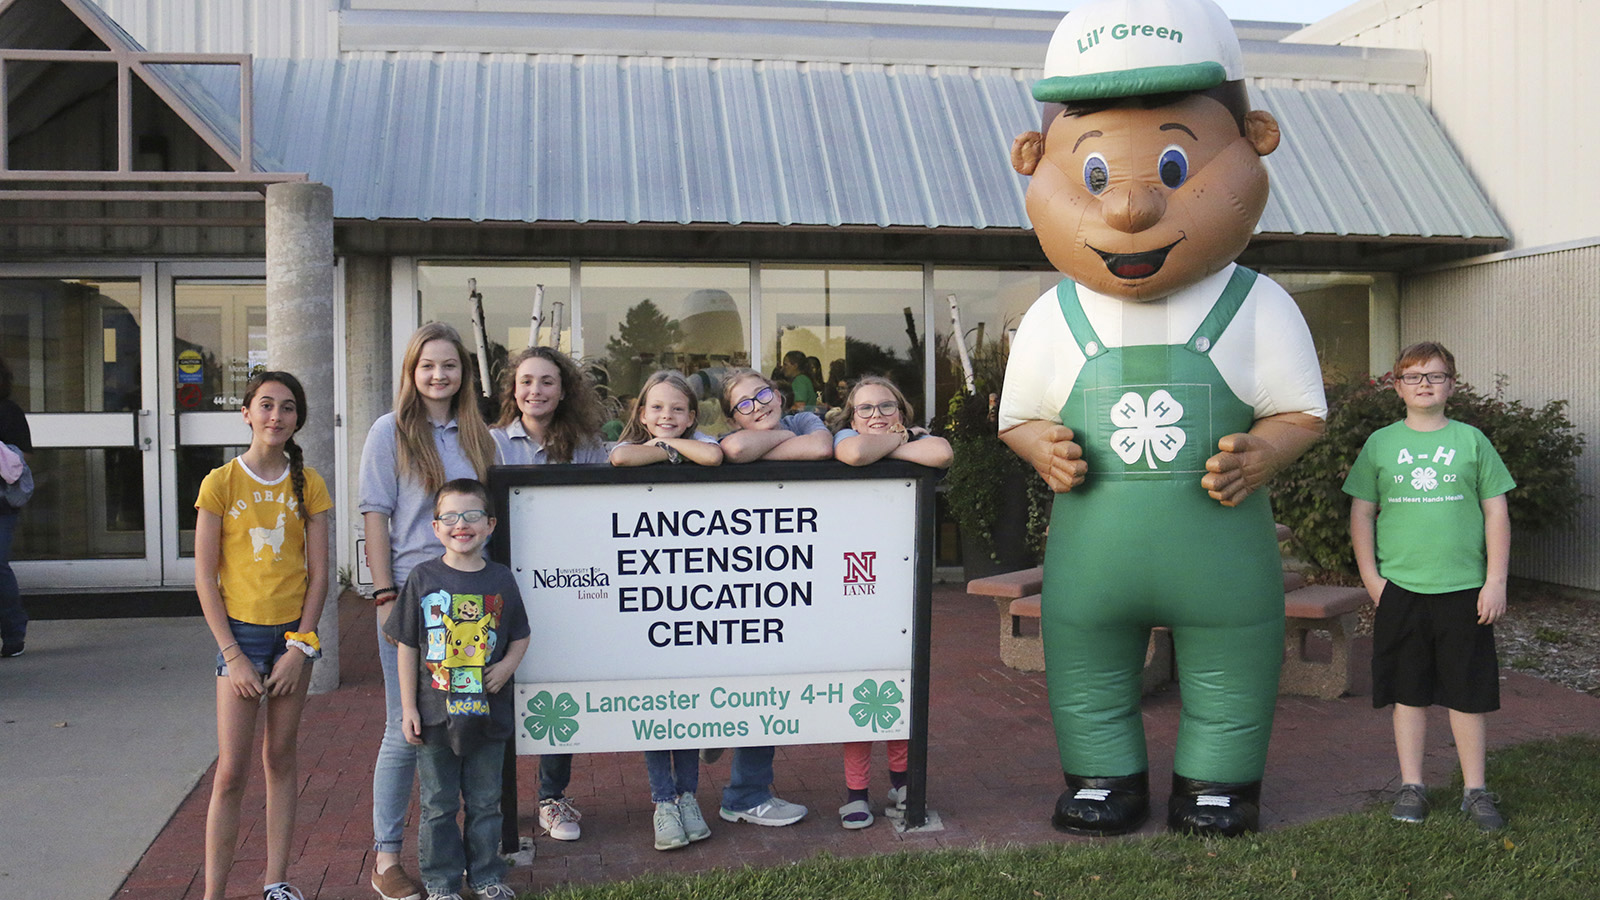 Lil Green mascot with group of kids